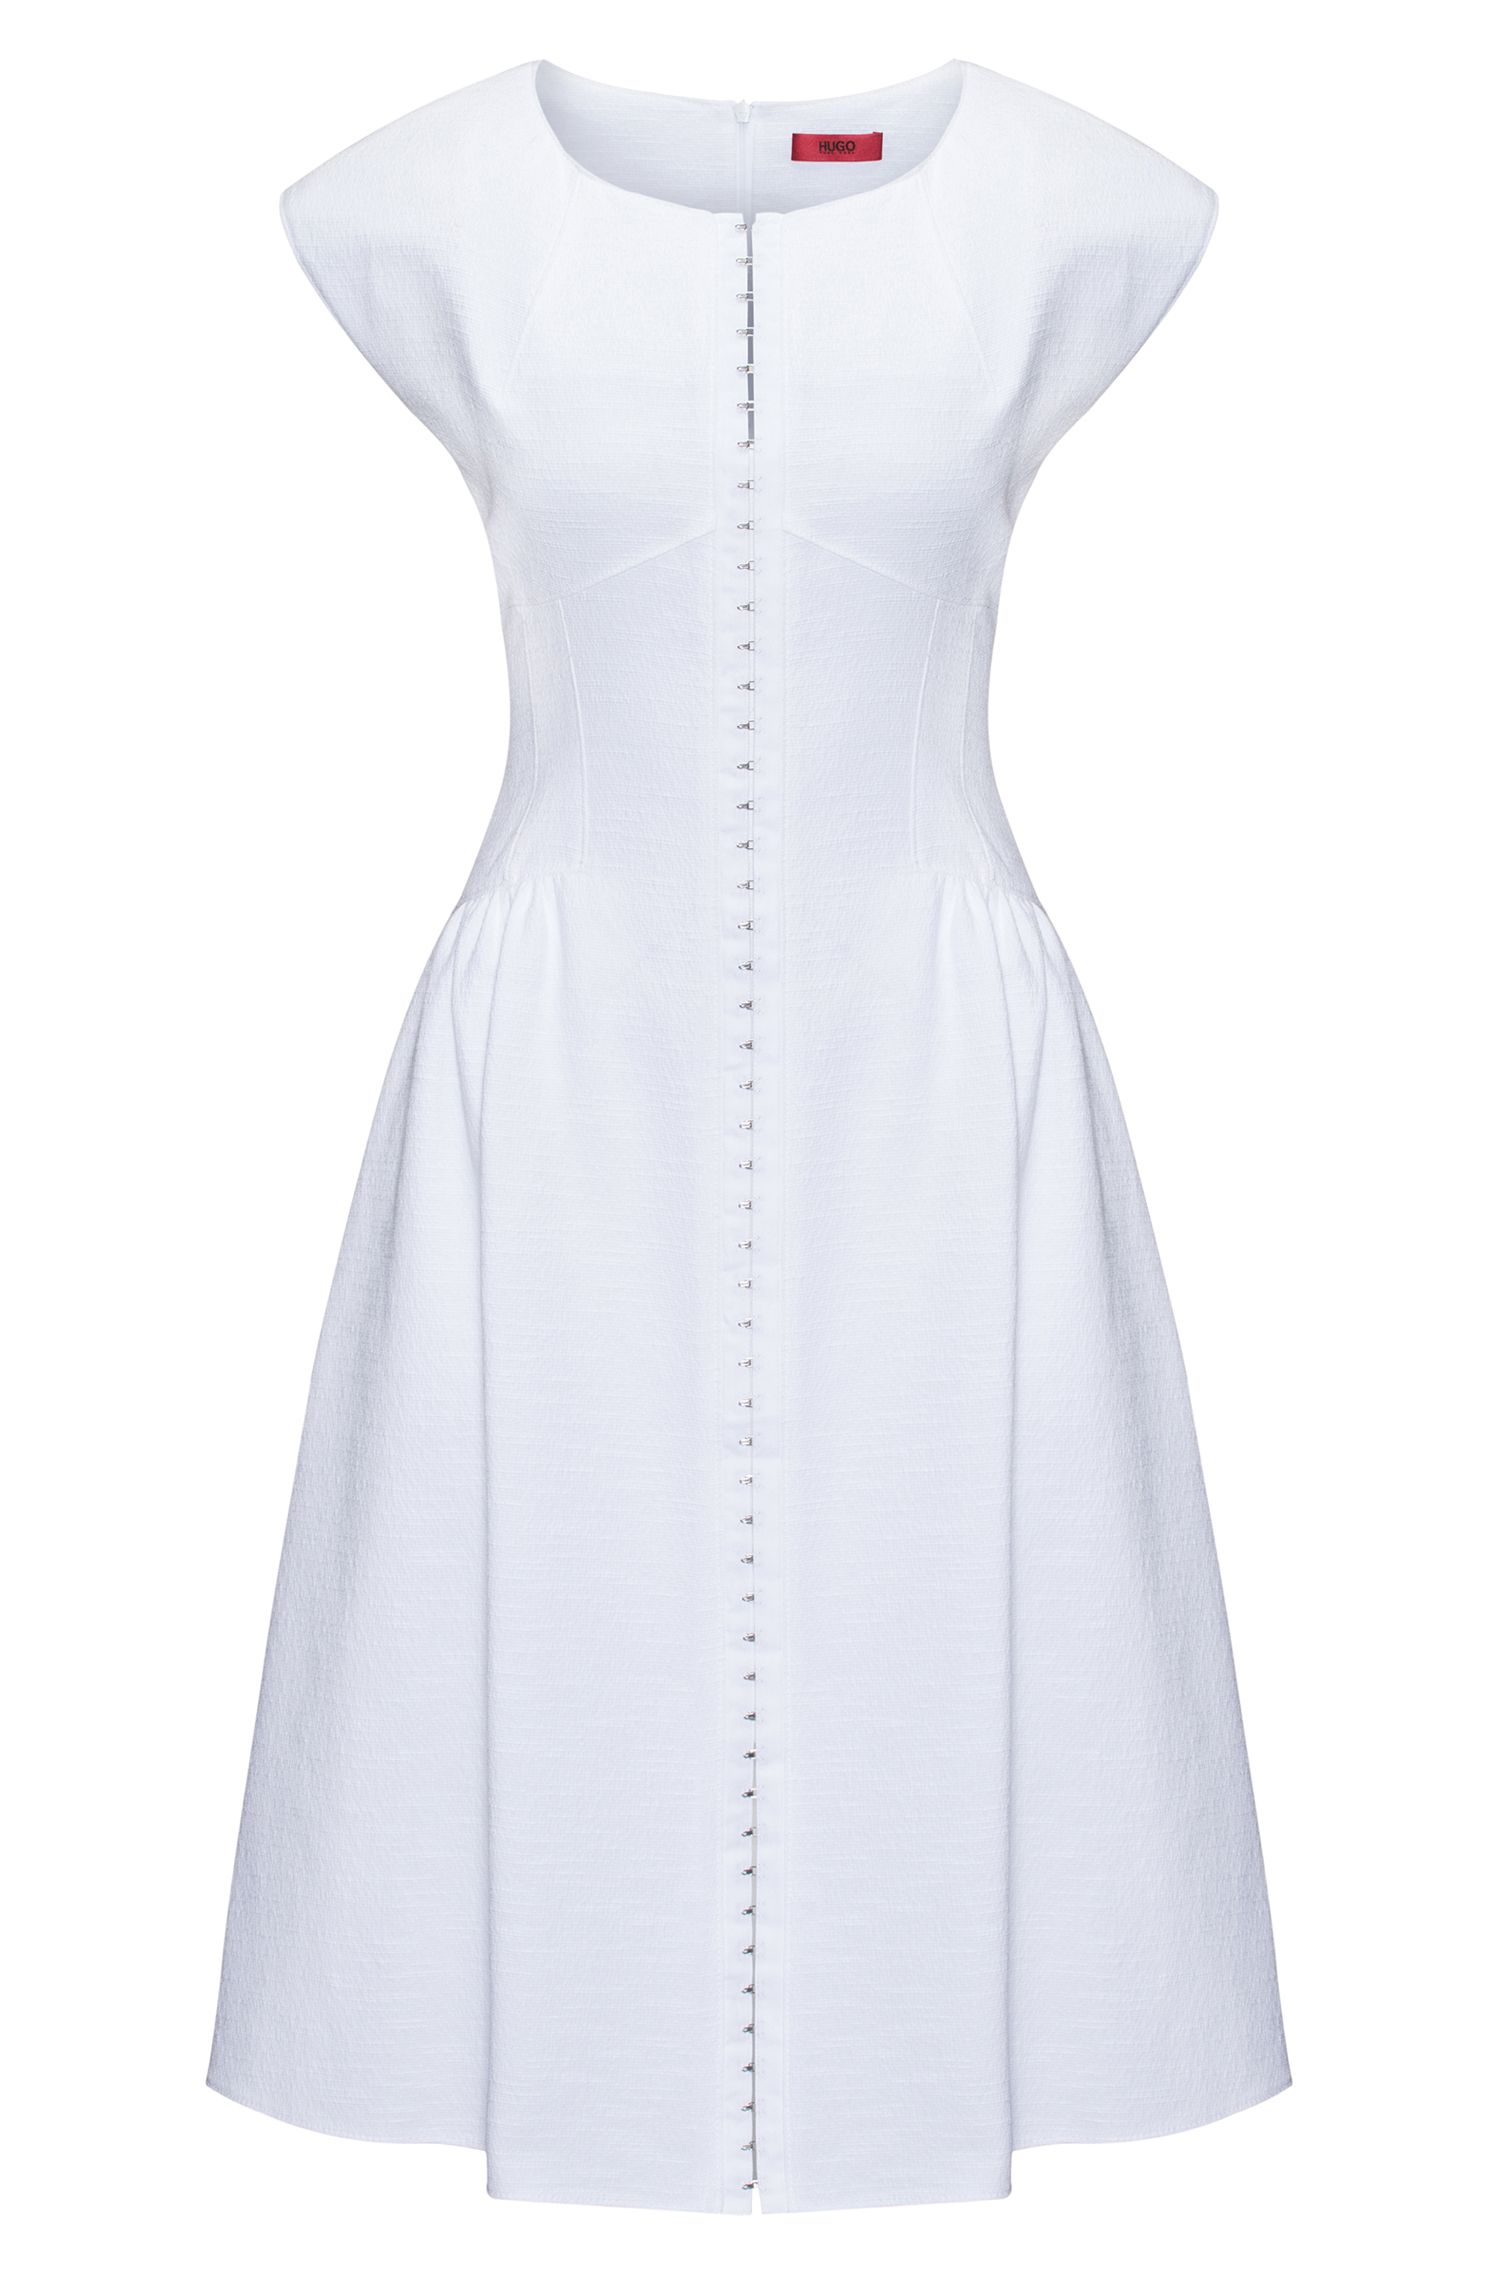 Cotton-blend dress with hook-and-eye closure